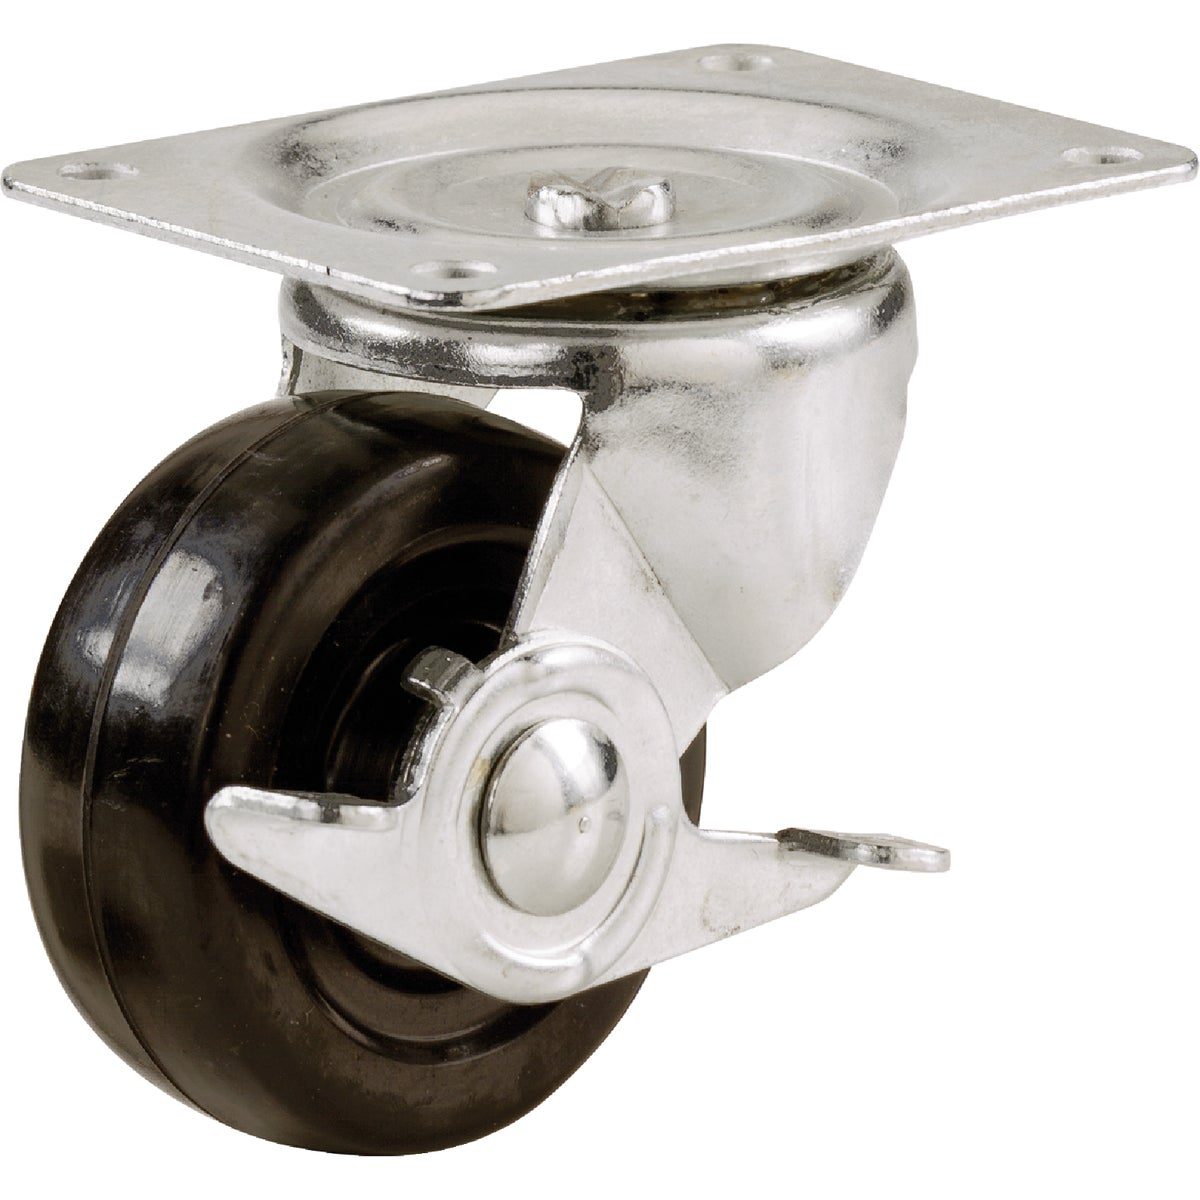 "2-1/2"" CASTER W/BRAKE - 9510 by Shepherd Hardware"